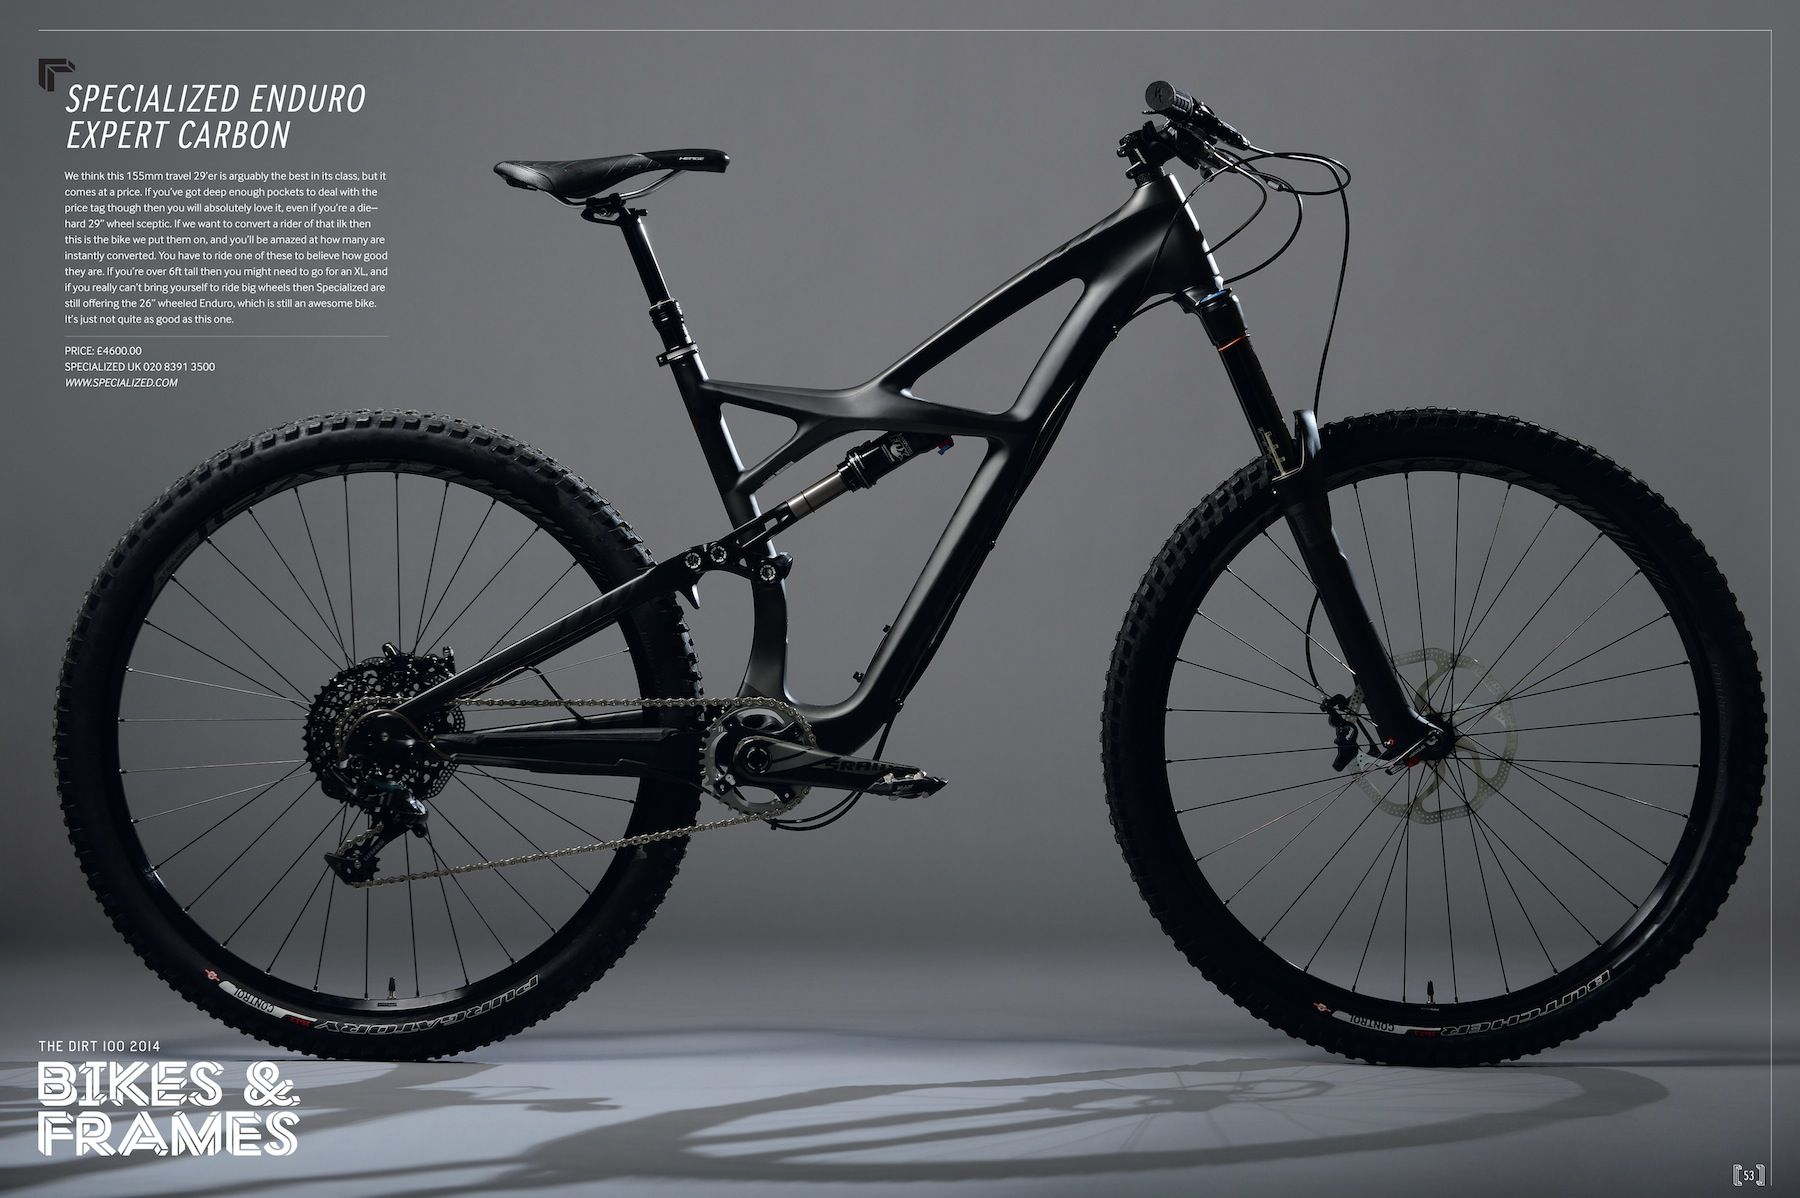 Mtb specialized enduro expert from 2014